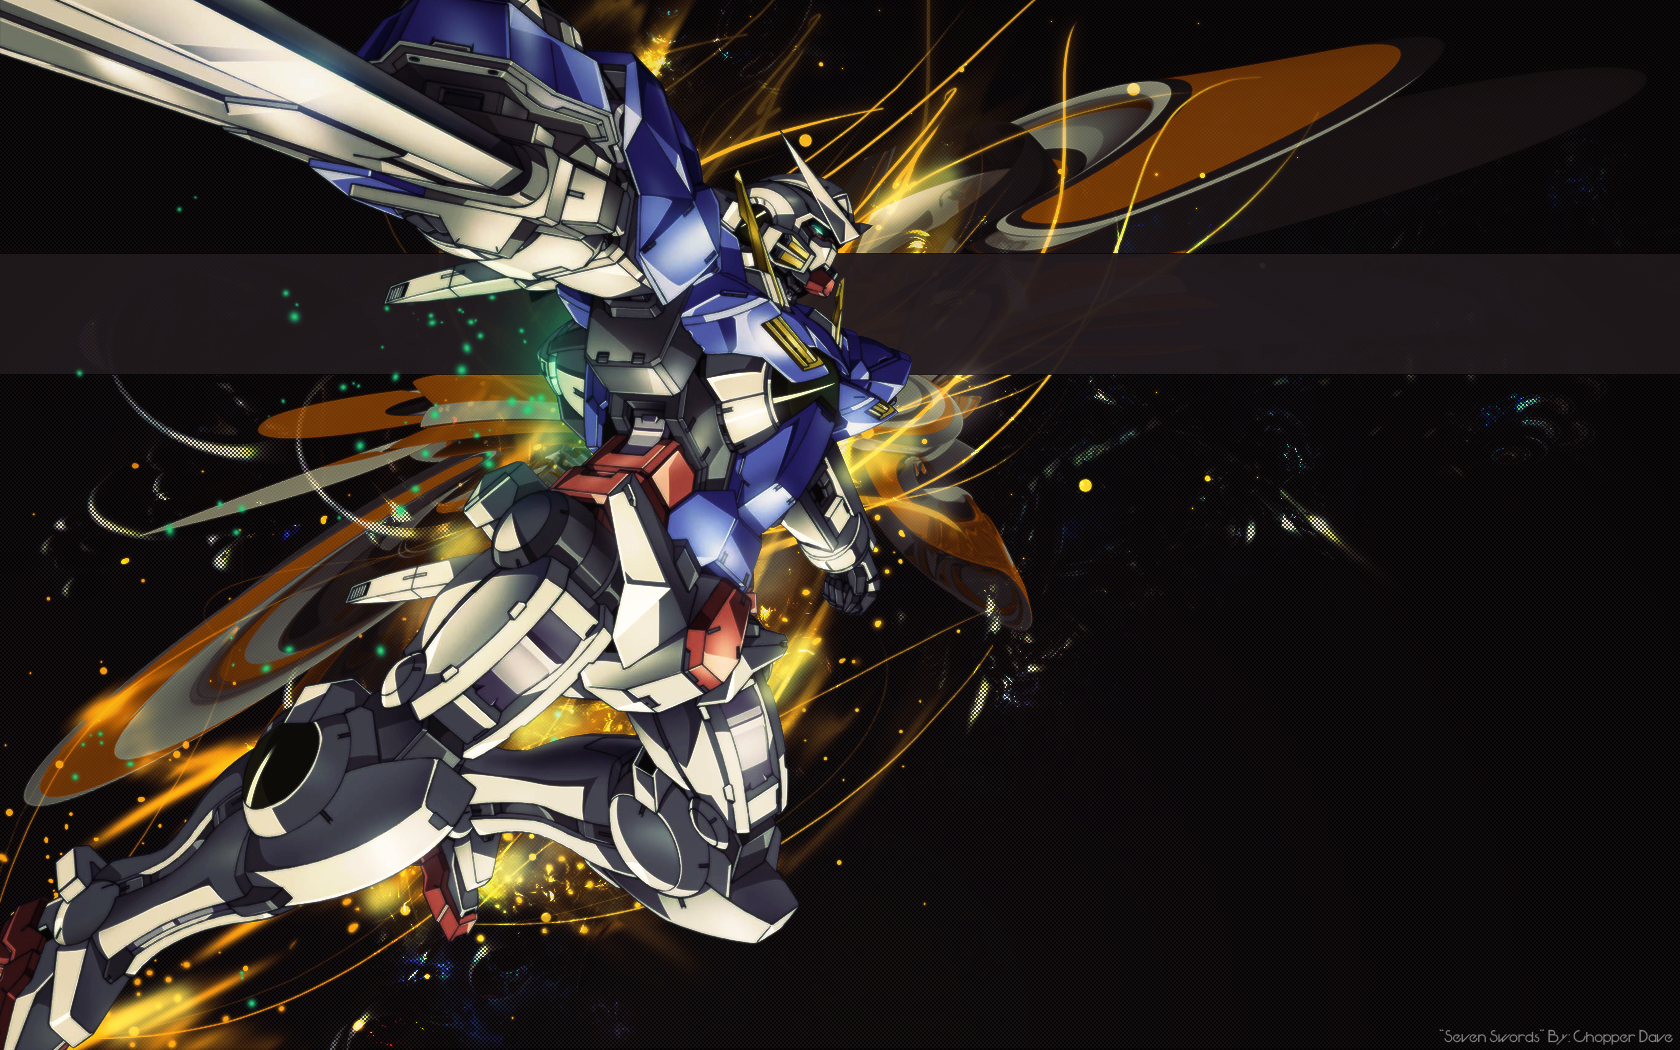 Gundam Wallpaper Iphone 4 10230 Wallpaper Game Wallpapers HD 1680x1050